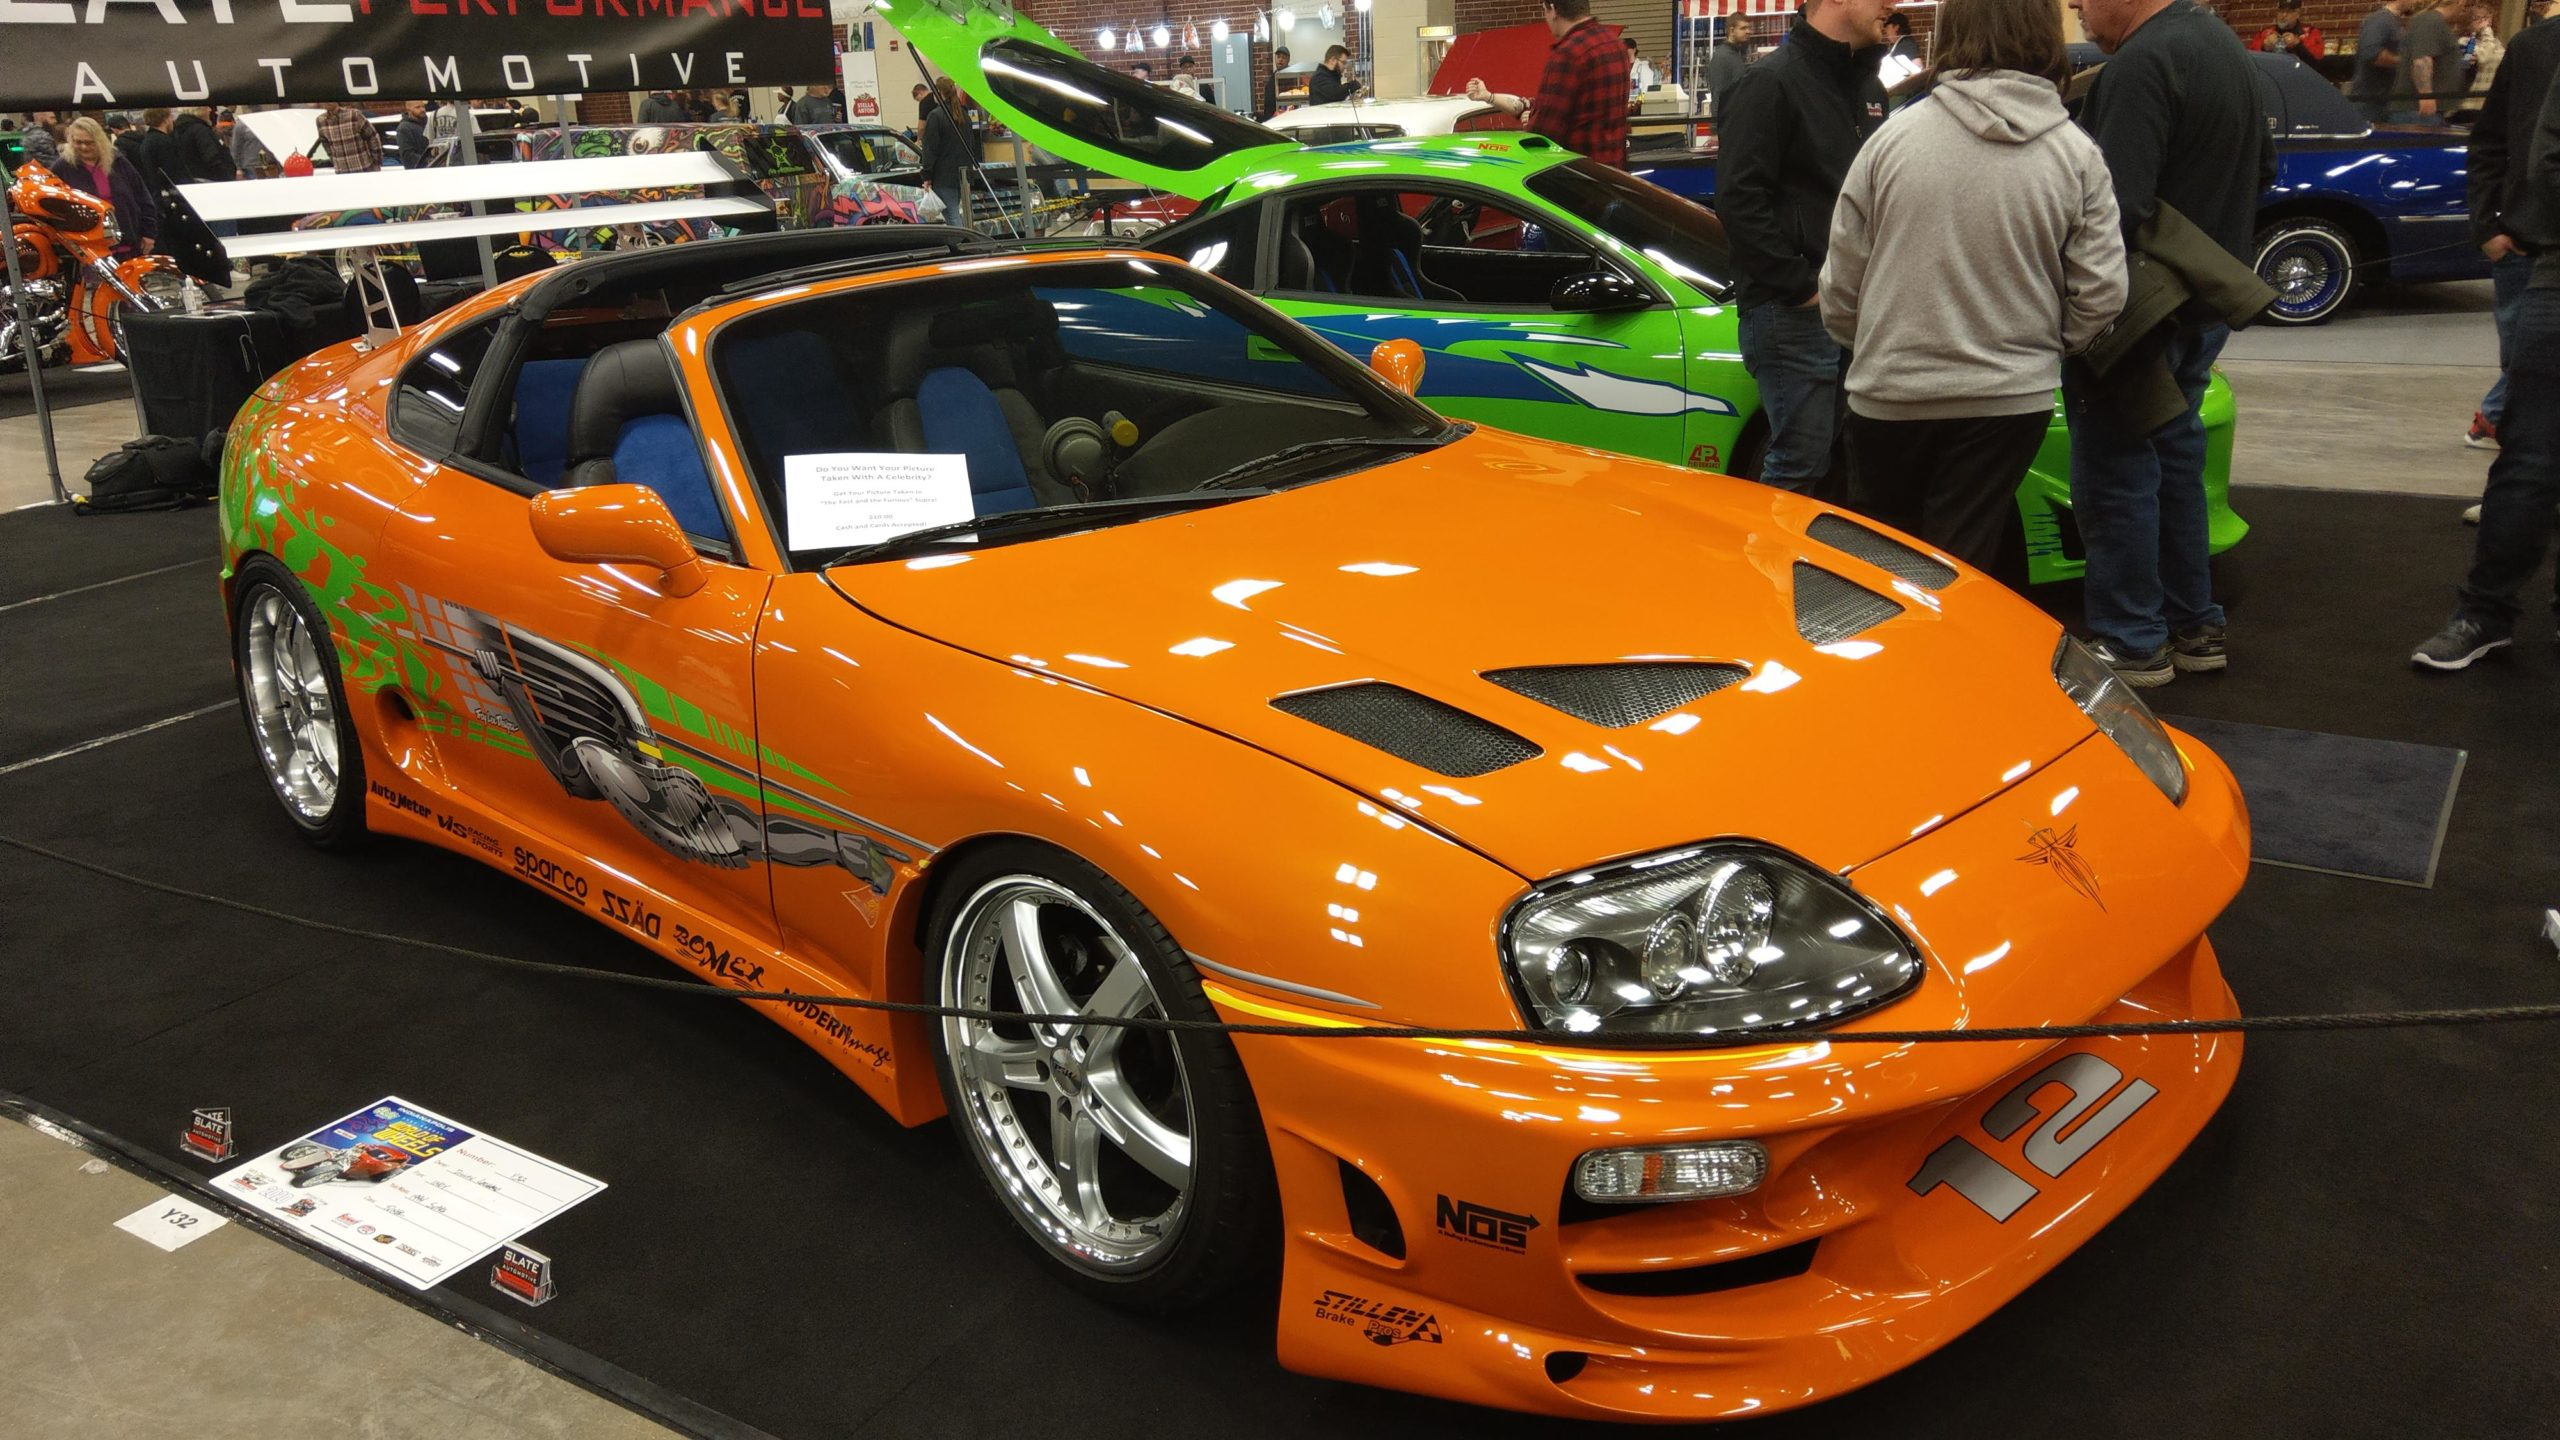 The fast and furious Toyota Supra and next to it is the Mitsubishi Eclipse